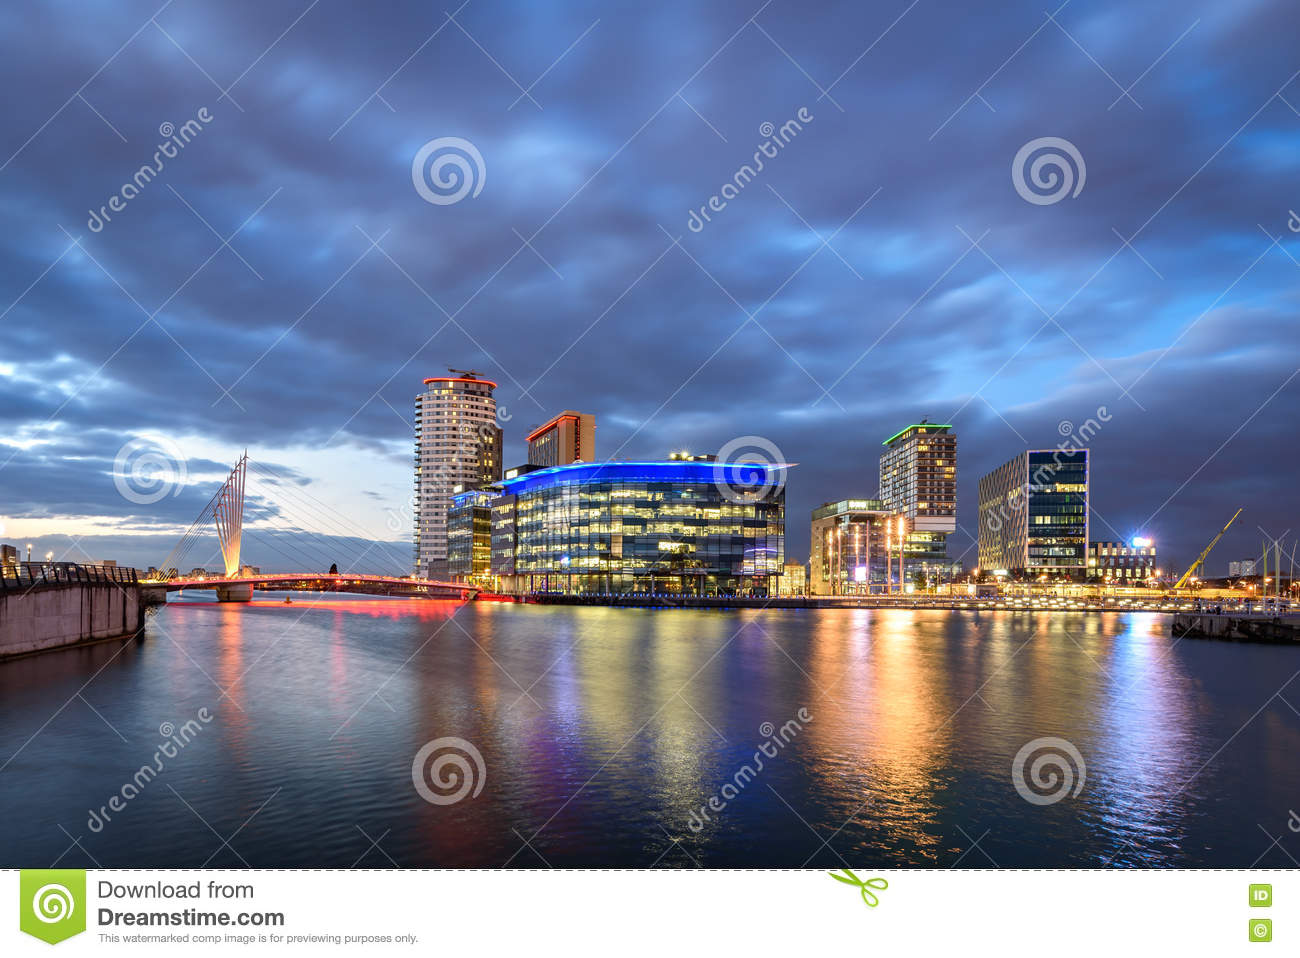 Salford Quays Manchester,England UK Stock Photo.